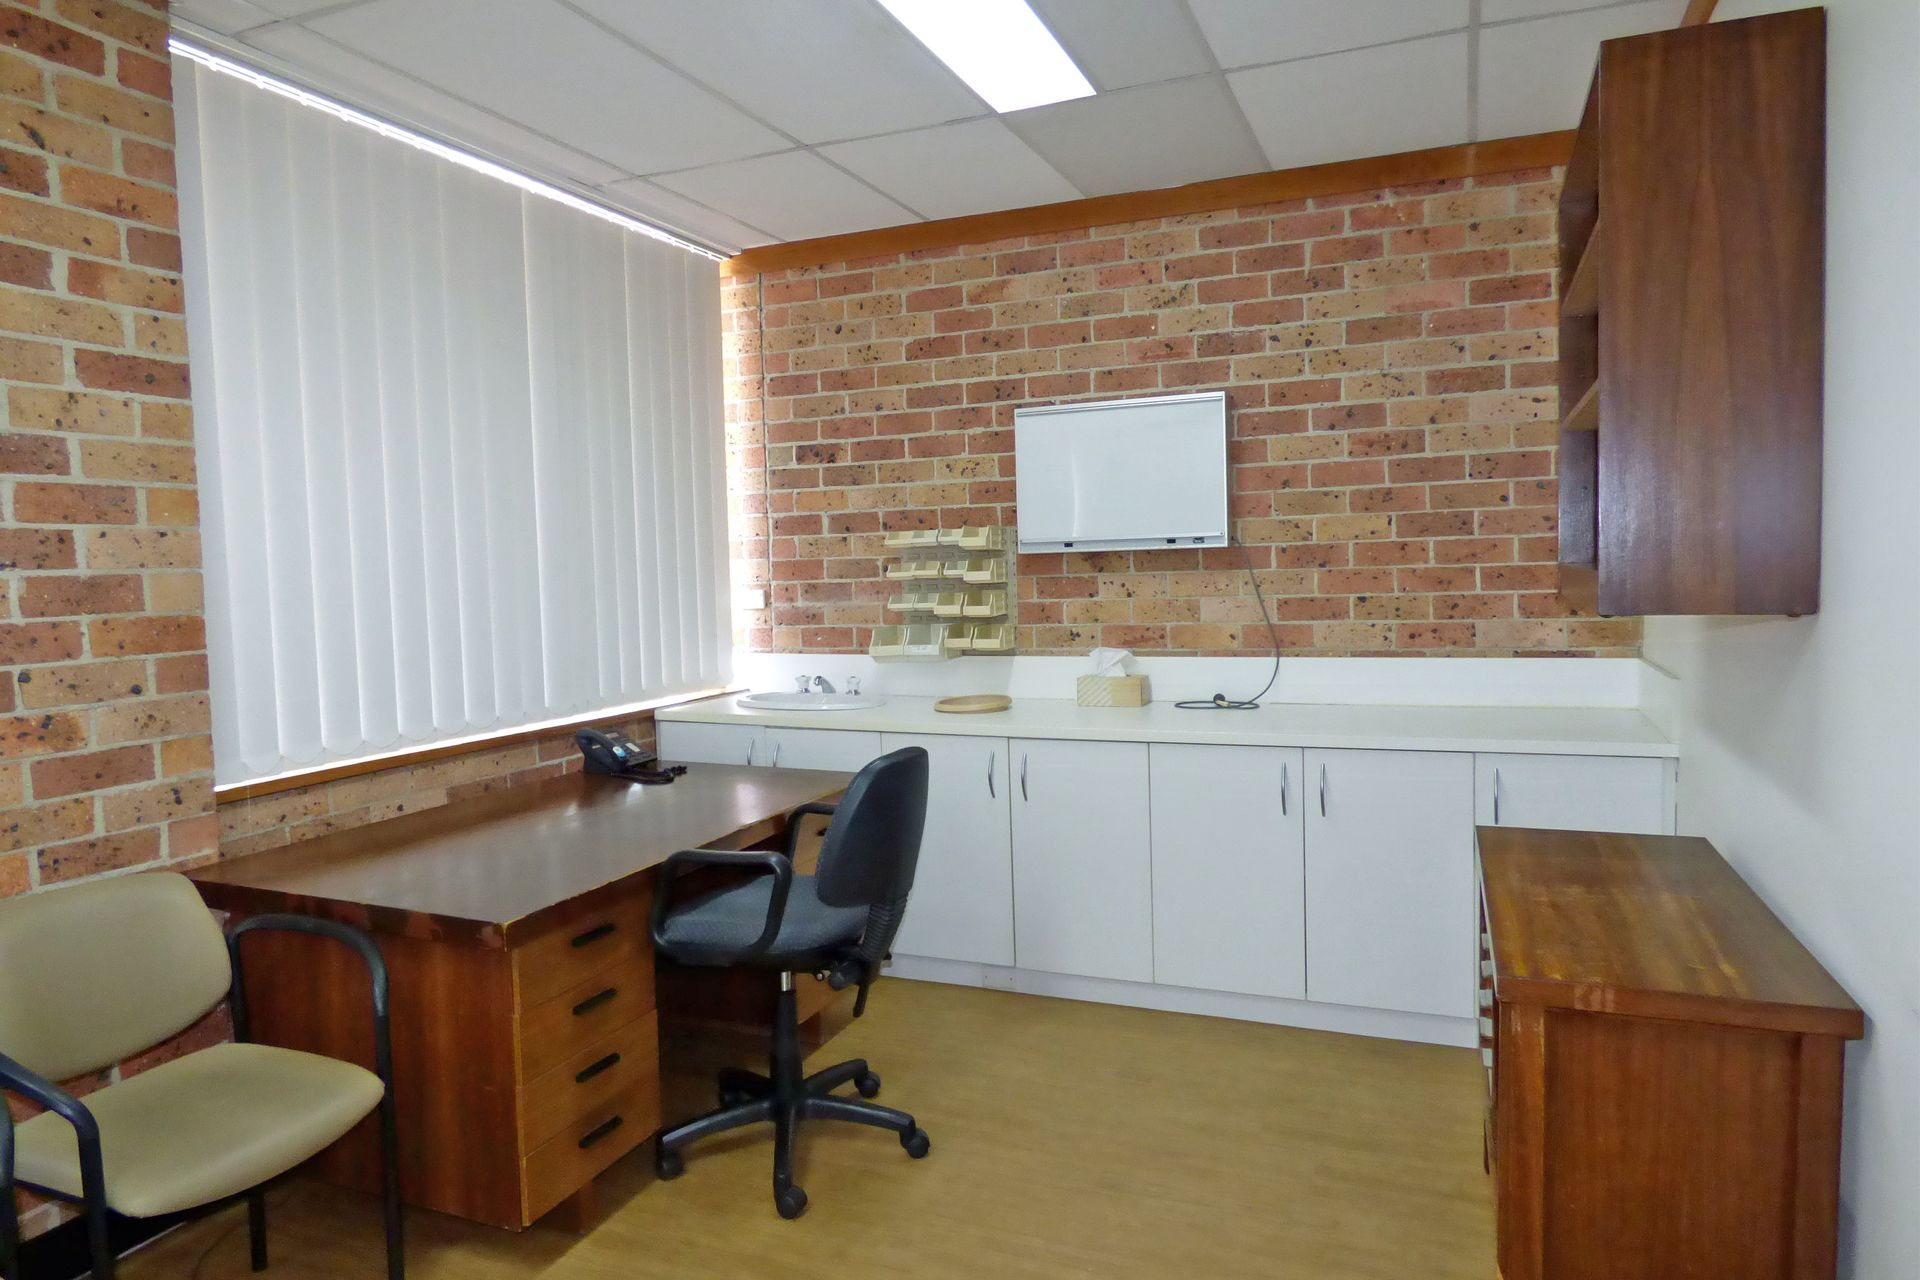 MEDICAL OR OFFICE SPACE WITH GREAT EXPOSURE